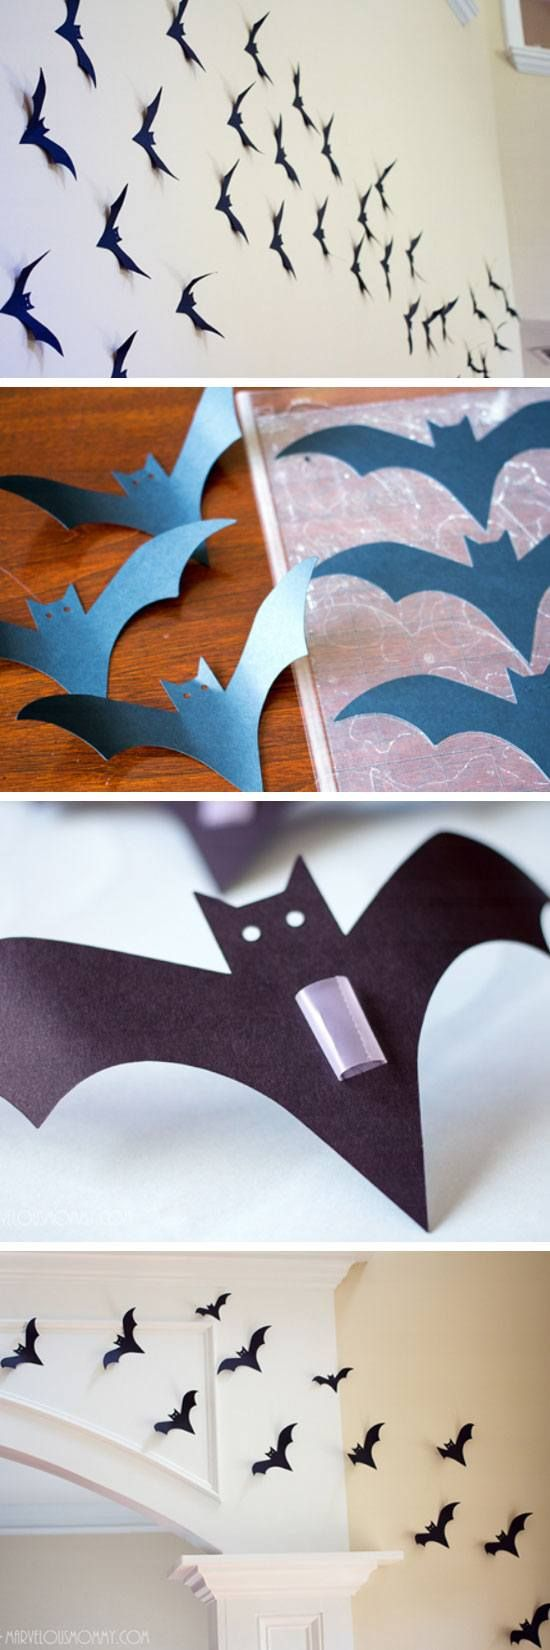 Best 20+ Easy halloween crafts ideas on Pinterest | Easy halloween ...